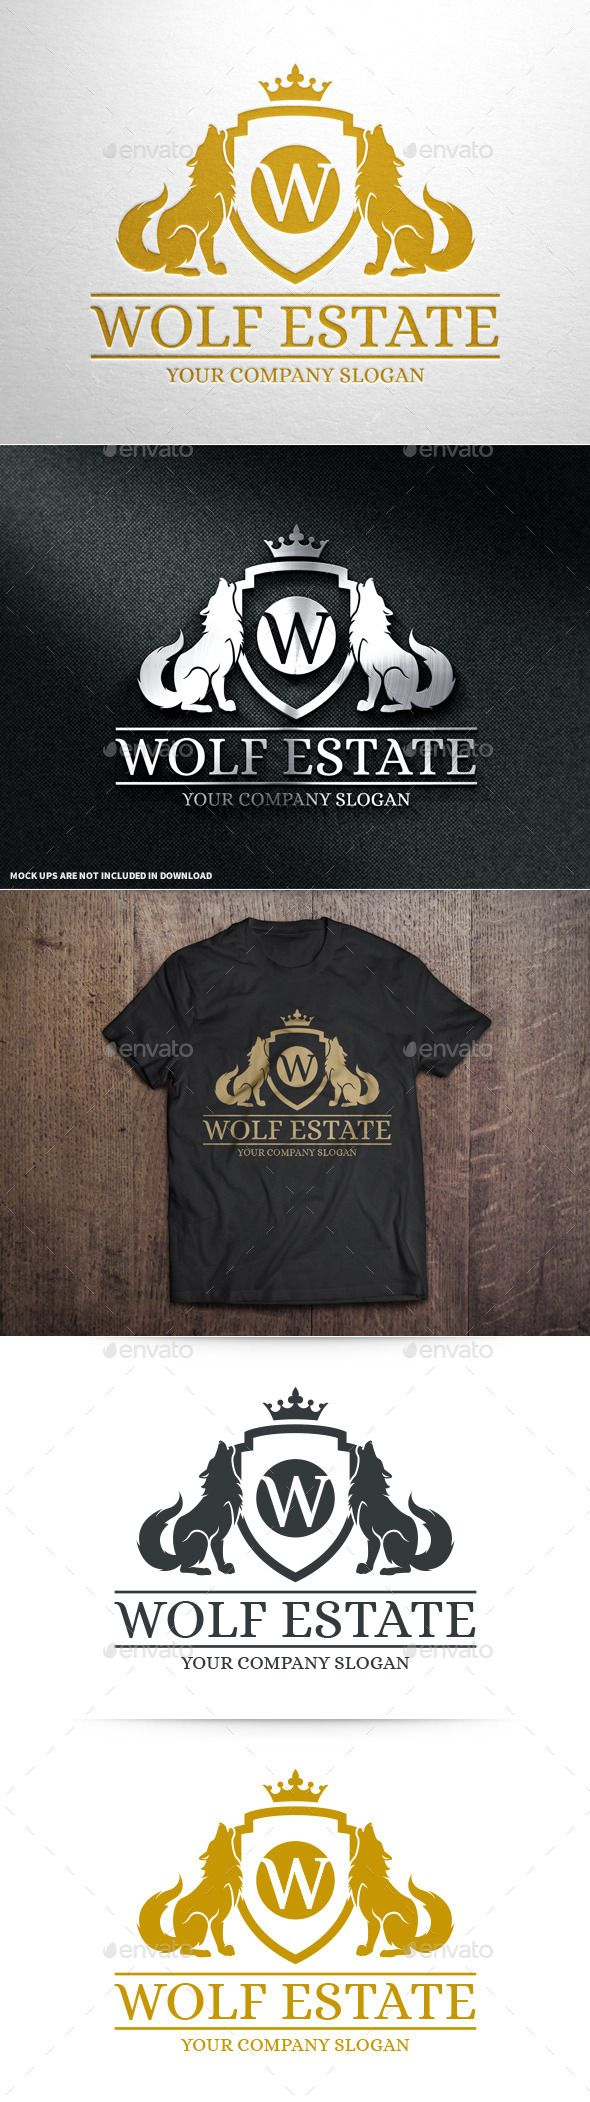 Wolf Estate Logo Template #vector #logo #template #design #logodesign #corporate #identity #brand #branding #company #agency #firm #freelance #hobby #blog #clan #finance #protection #luxury #wolf #crest #shield #crown #letter #detailed #silhouette #coatofarms #gamer #game #resort #hotel #buy #sale #envato #market #graphicriver